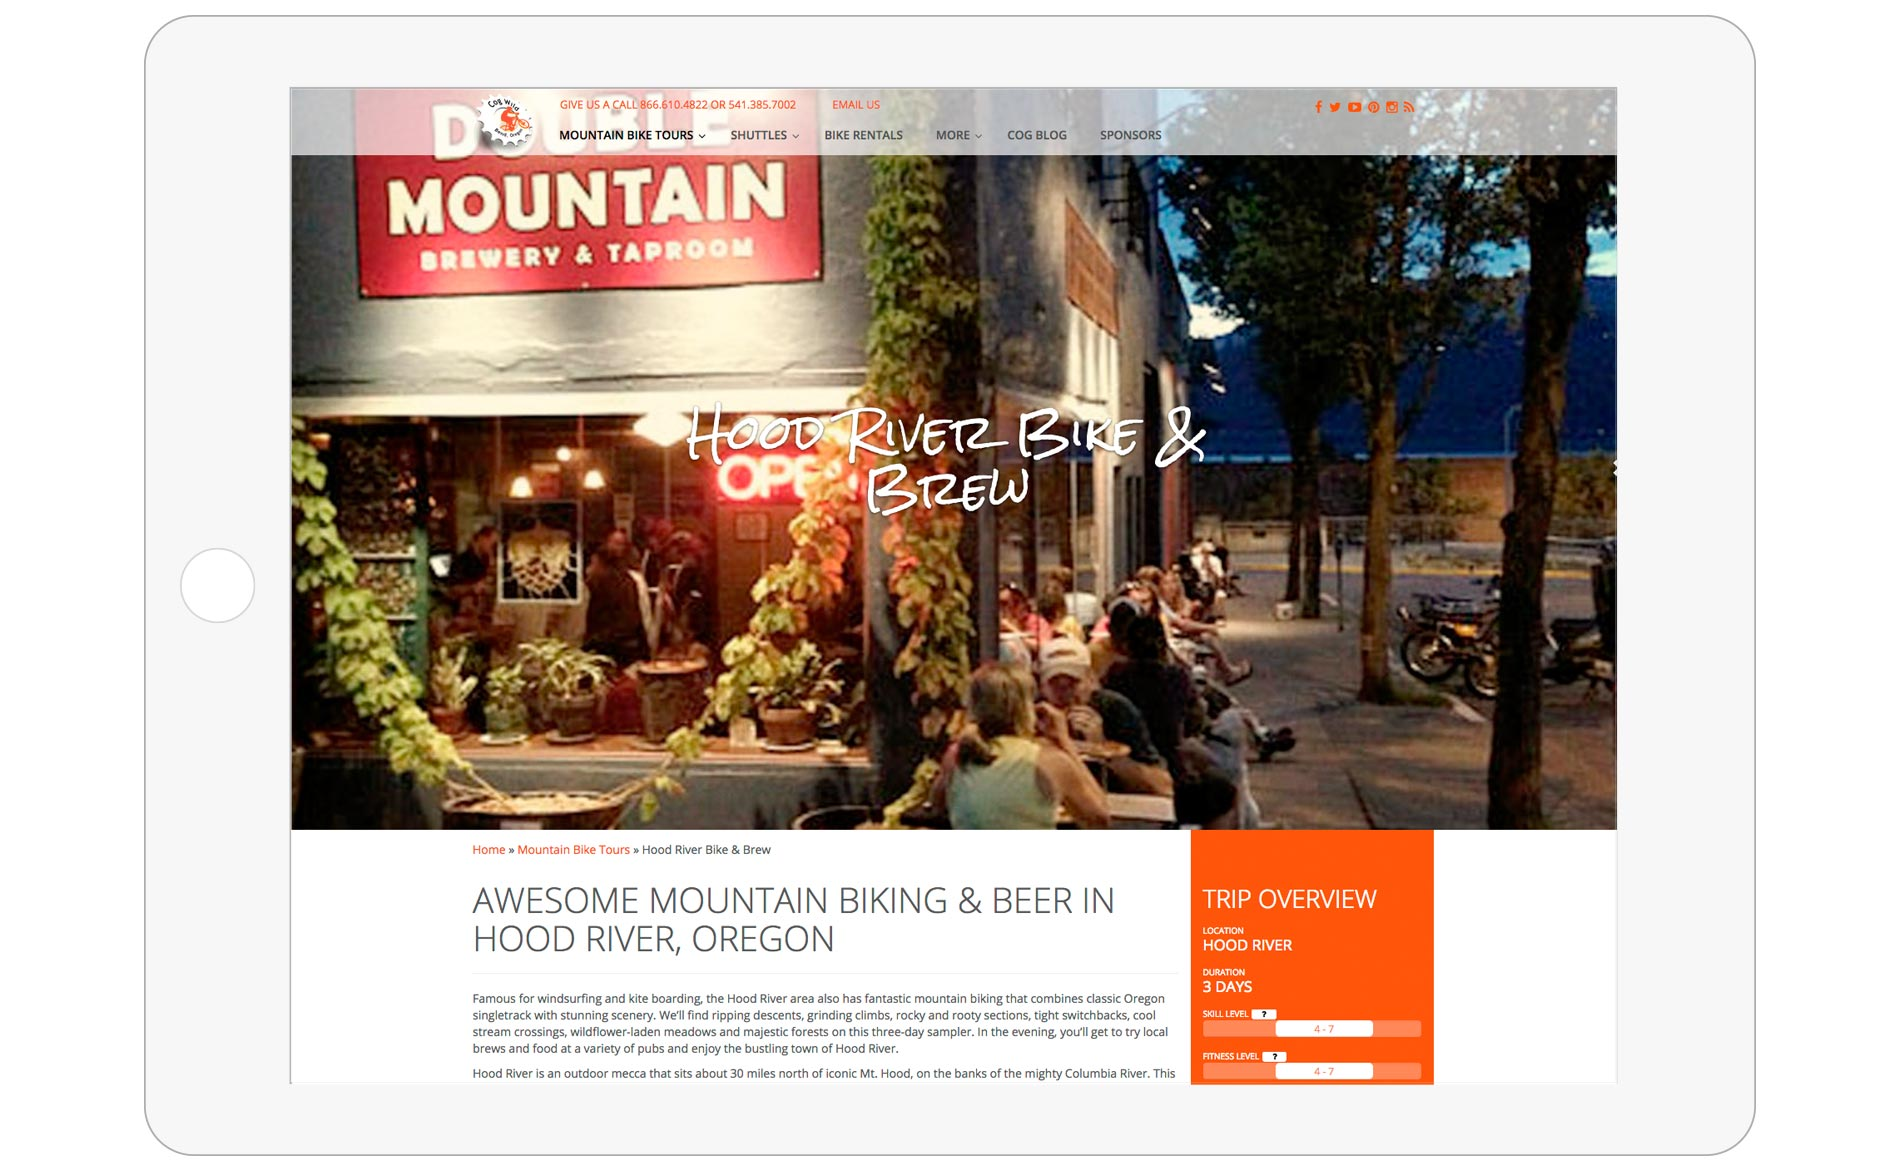 Cog Wild Mountain Bike Tours Web Design - Tour Page